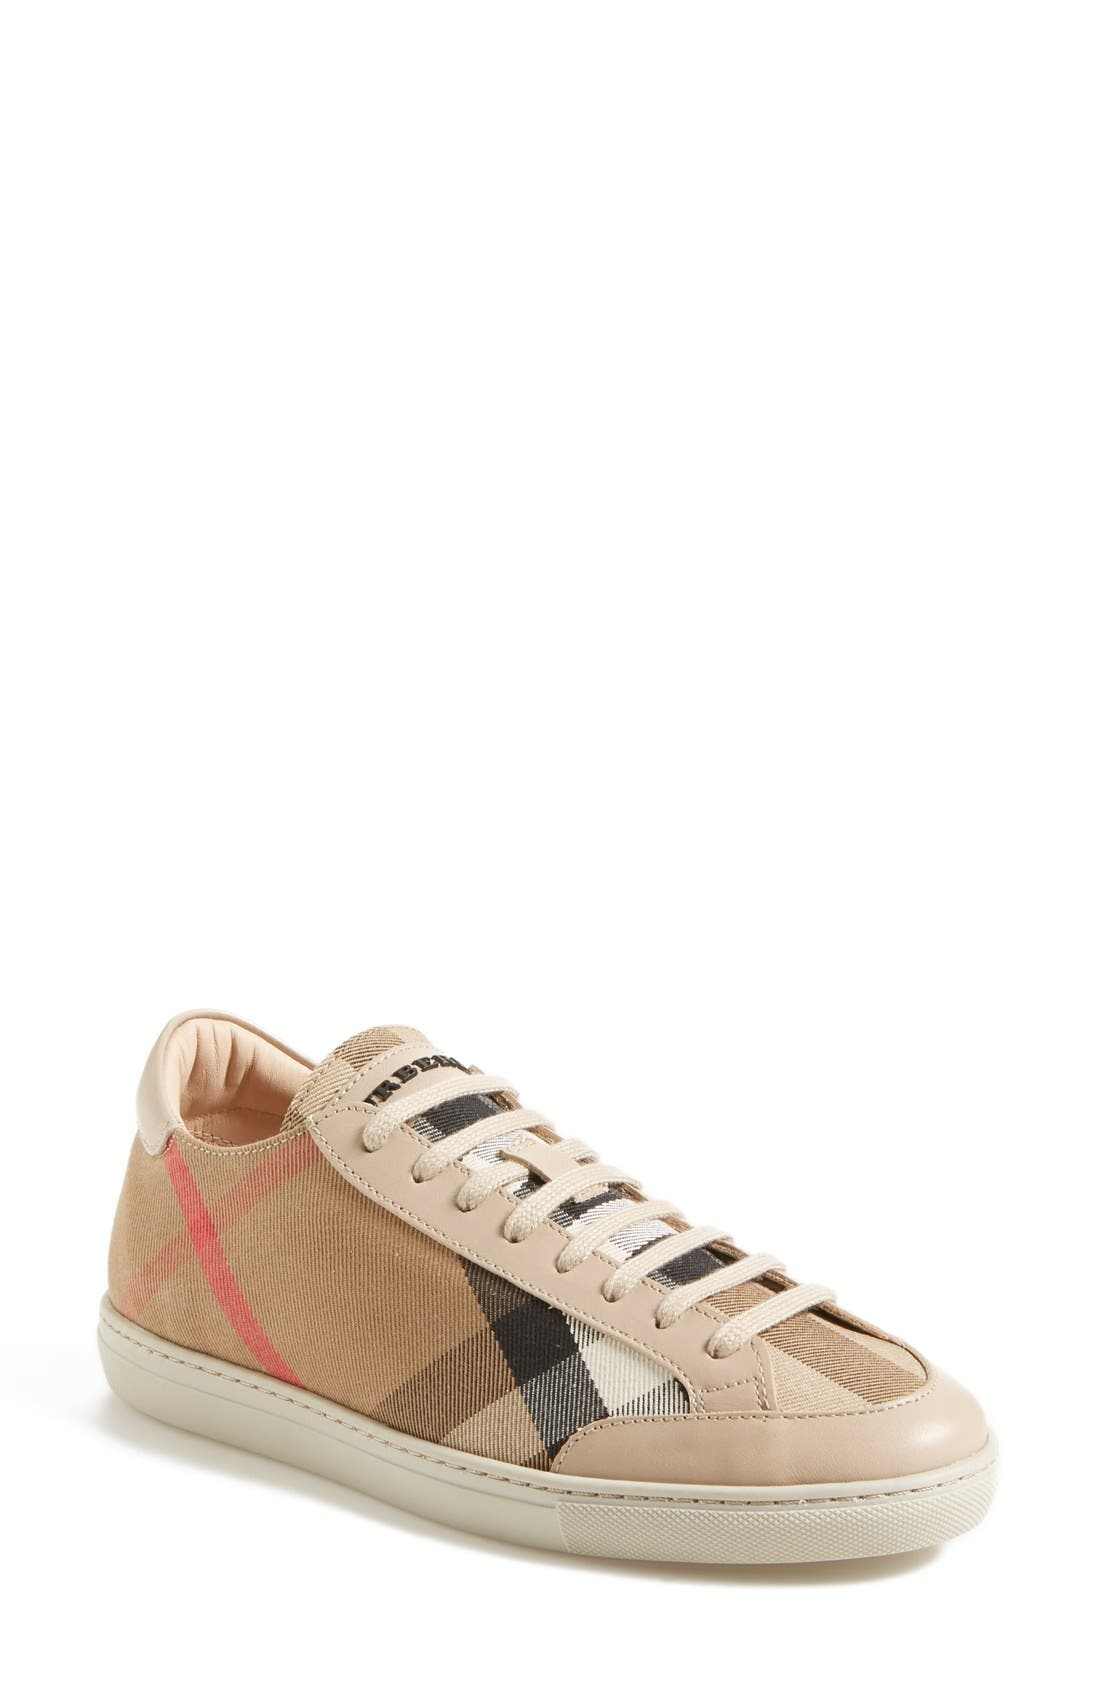 BURBERRY,                             'Hartfields' Sneaker,                             Main thumbnail 1, color,                             250